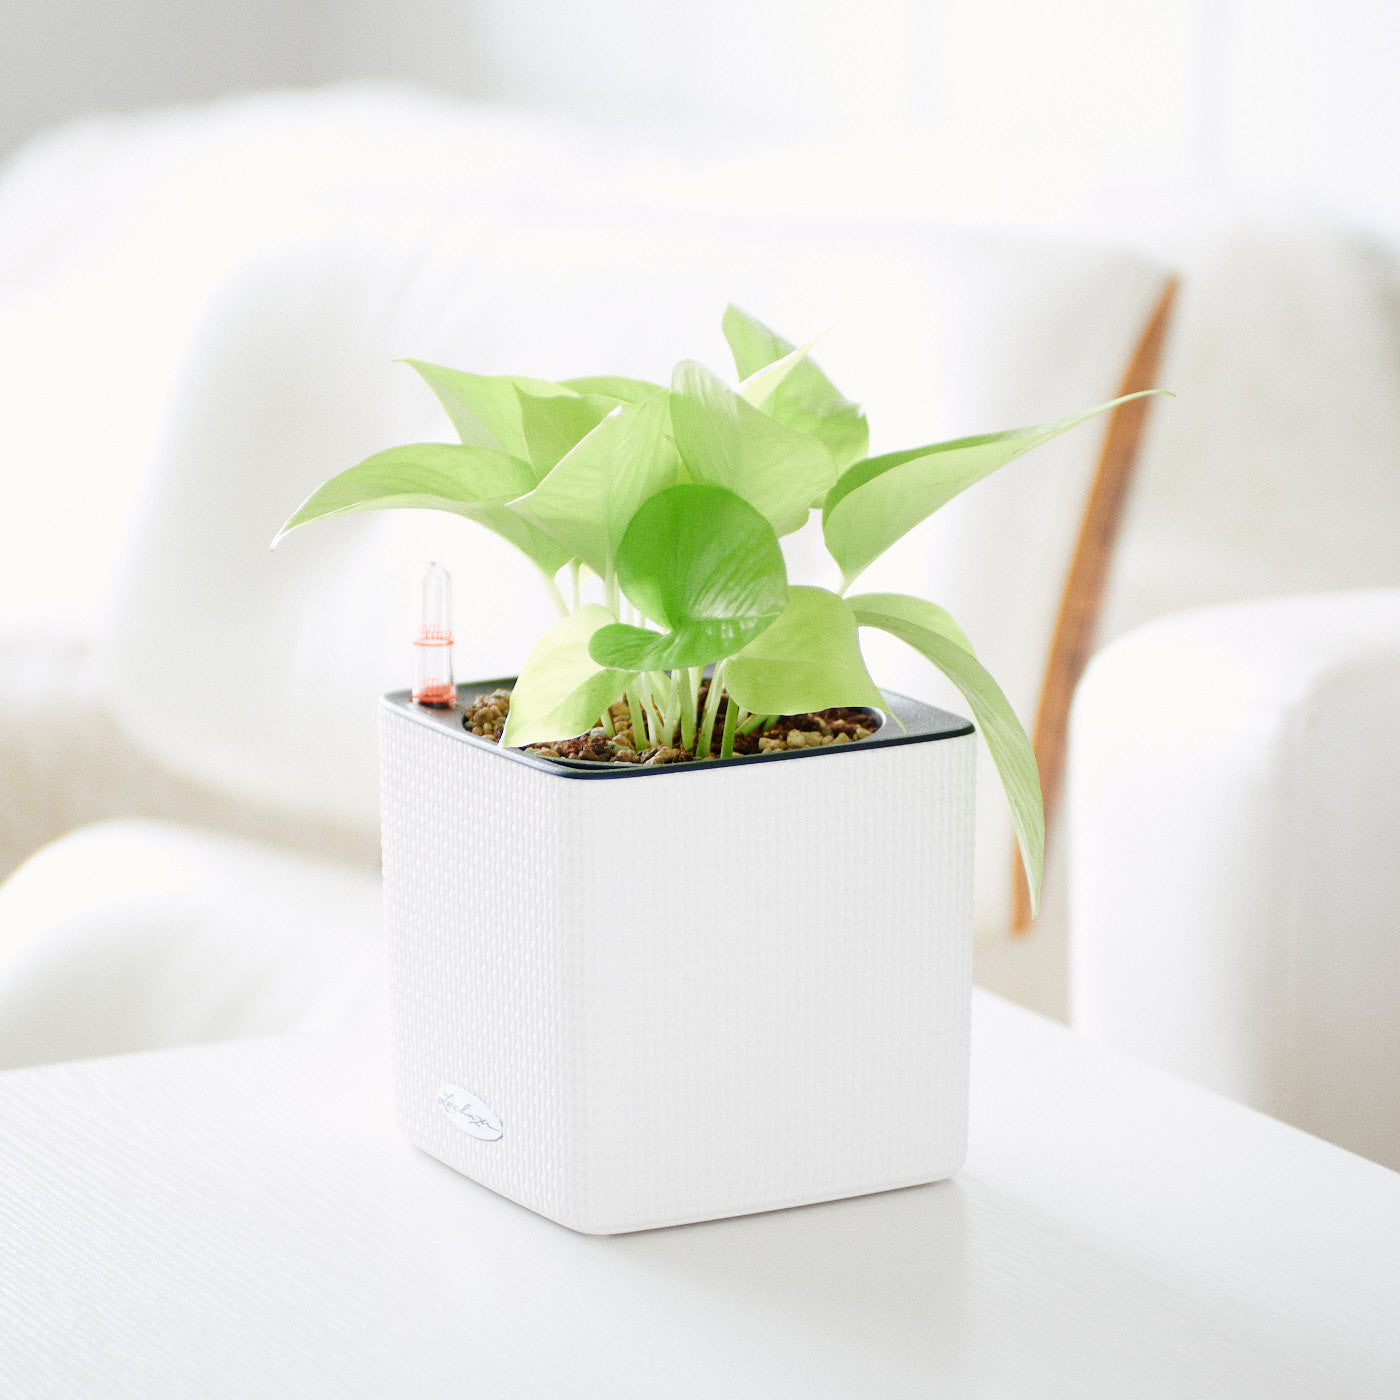 Pothos Neon Plant In Lechuza Cube 14 White Planter | My City Plants